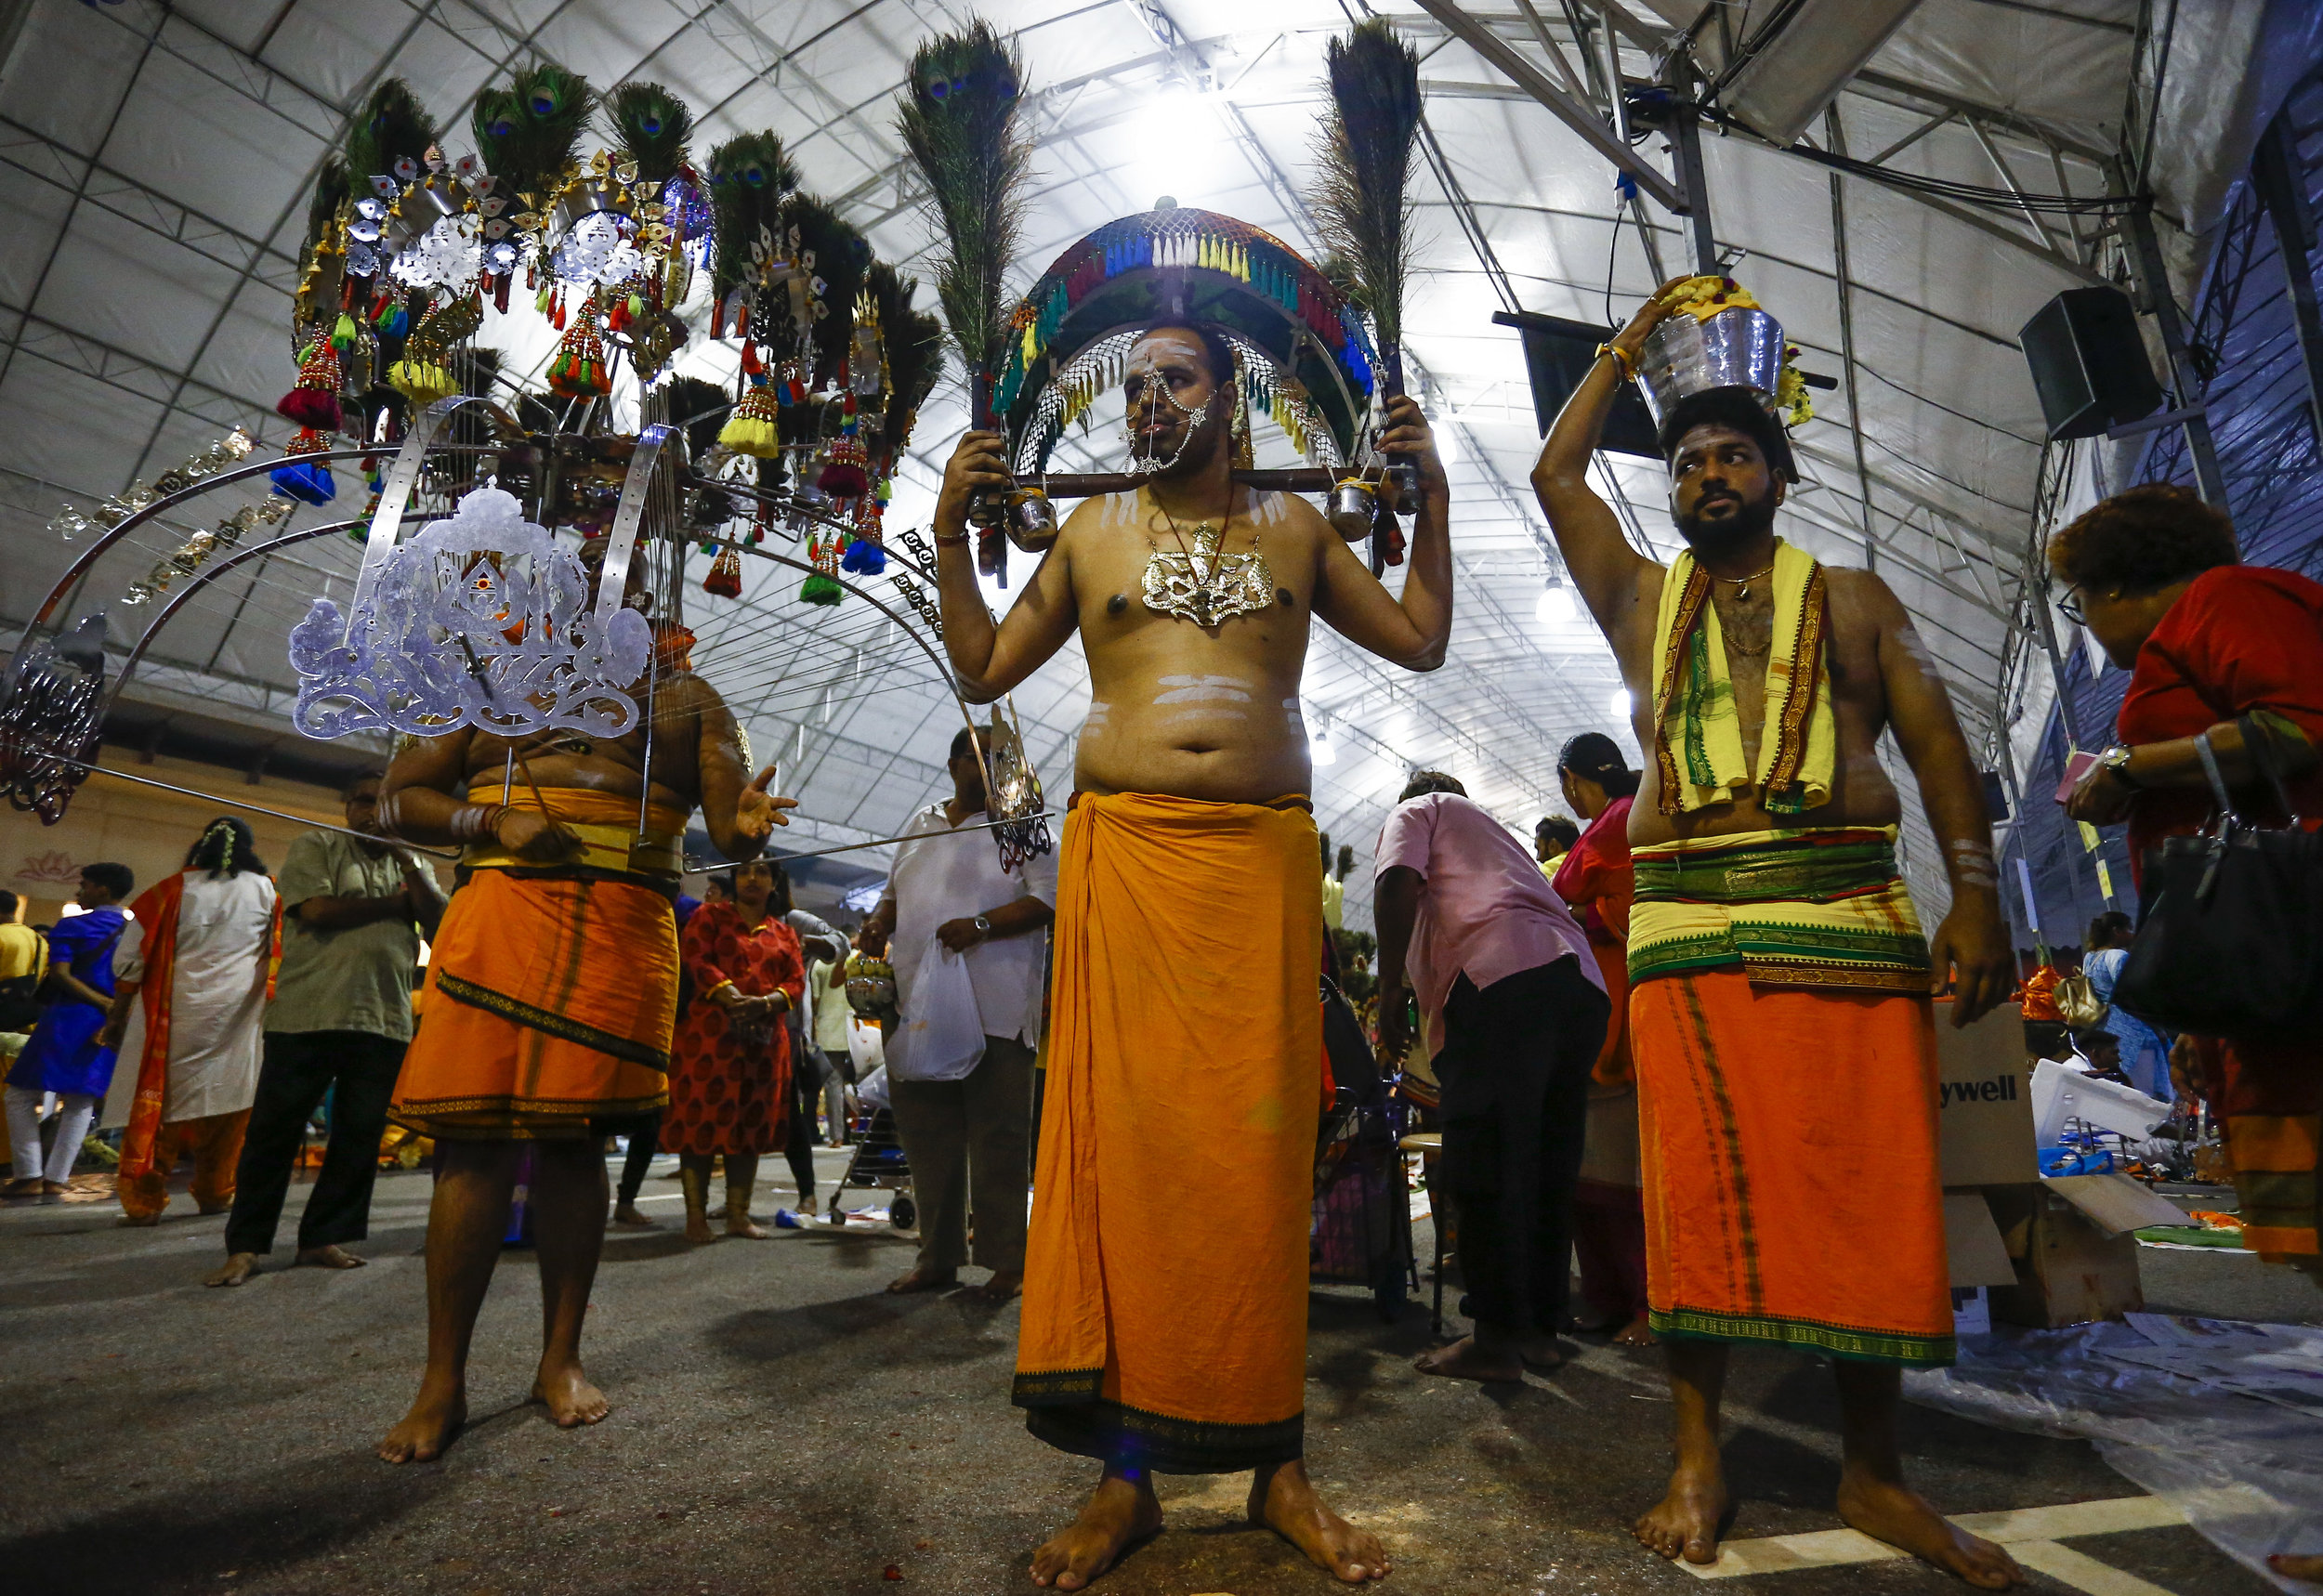 Devotees carrying various forms of kavadi are pictured during the Thaipusam festival in Singapore, January 21, 2019. Thaipusam is a Hindu festival observed on the day of the full moon during the Tamil calendar month of Thai, and celebrated in honour of the Hindu god Lord Murugan. REUTERS/Feline Lim